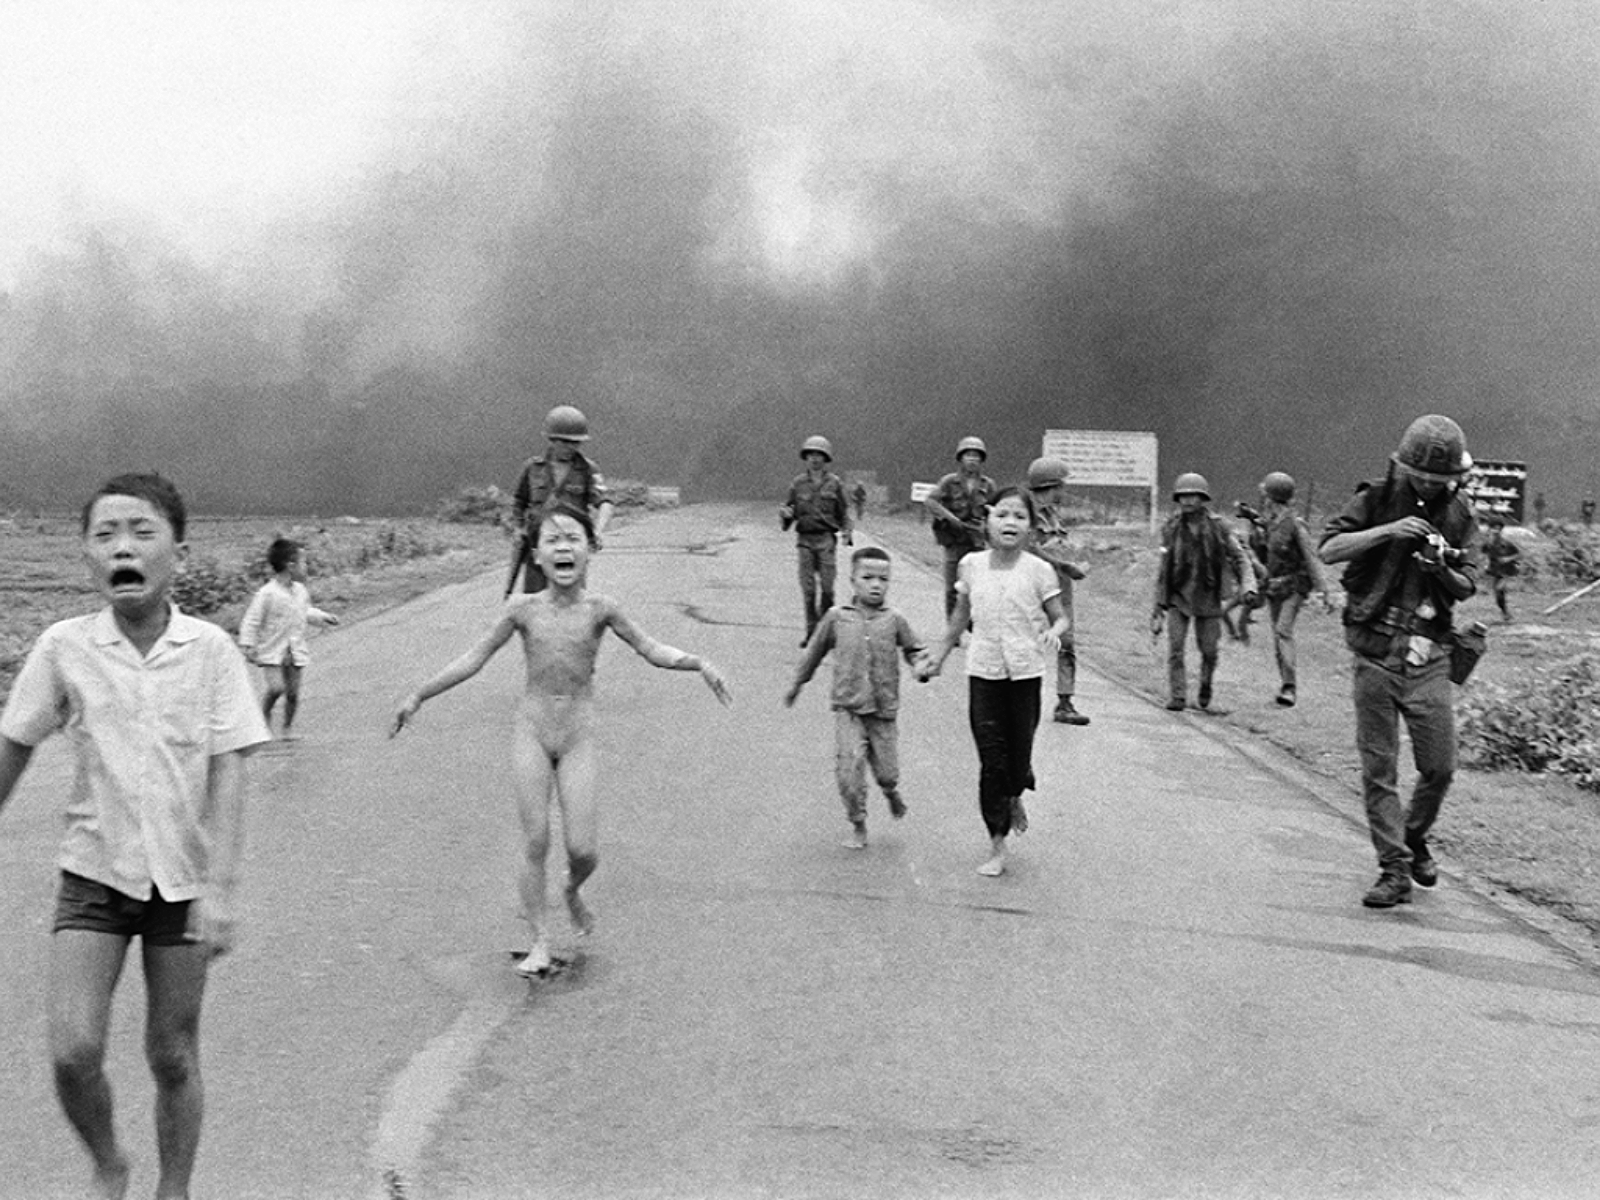 Trang Bang, Vietnam, June 8, 1972: 9-year-old Kim Phuc runs naked in the street after a napalm attack. One of David Burnett's images from that fateful day is included in the gallery.© Nick Ut/AP